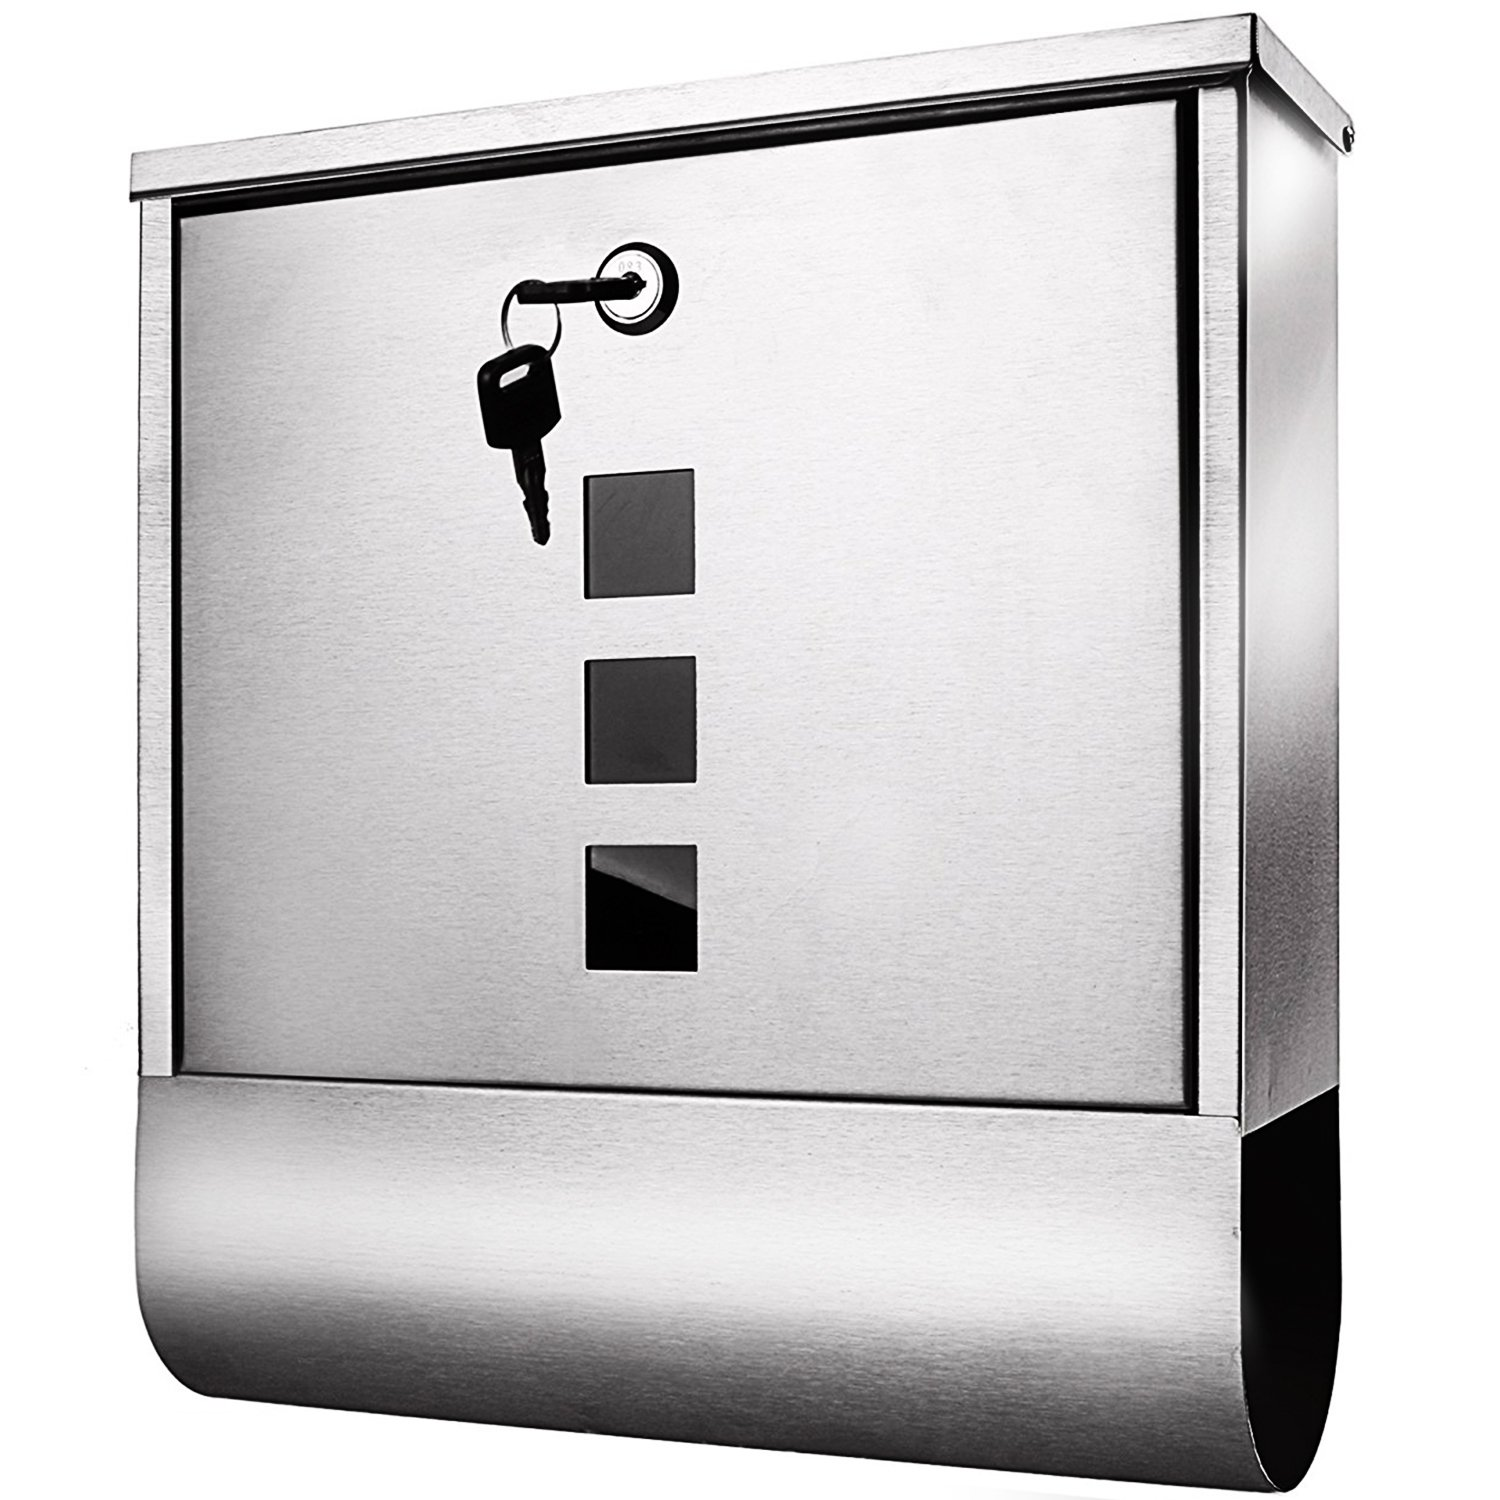 Homself Wall Mounted Mailbox Stainless Steel Locking Mail box Postbox with Retrieval Door 2 Keys and Newspaper Compartment